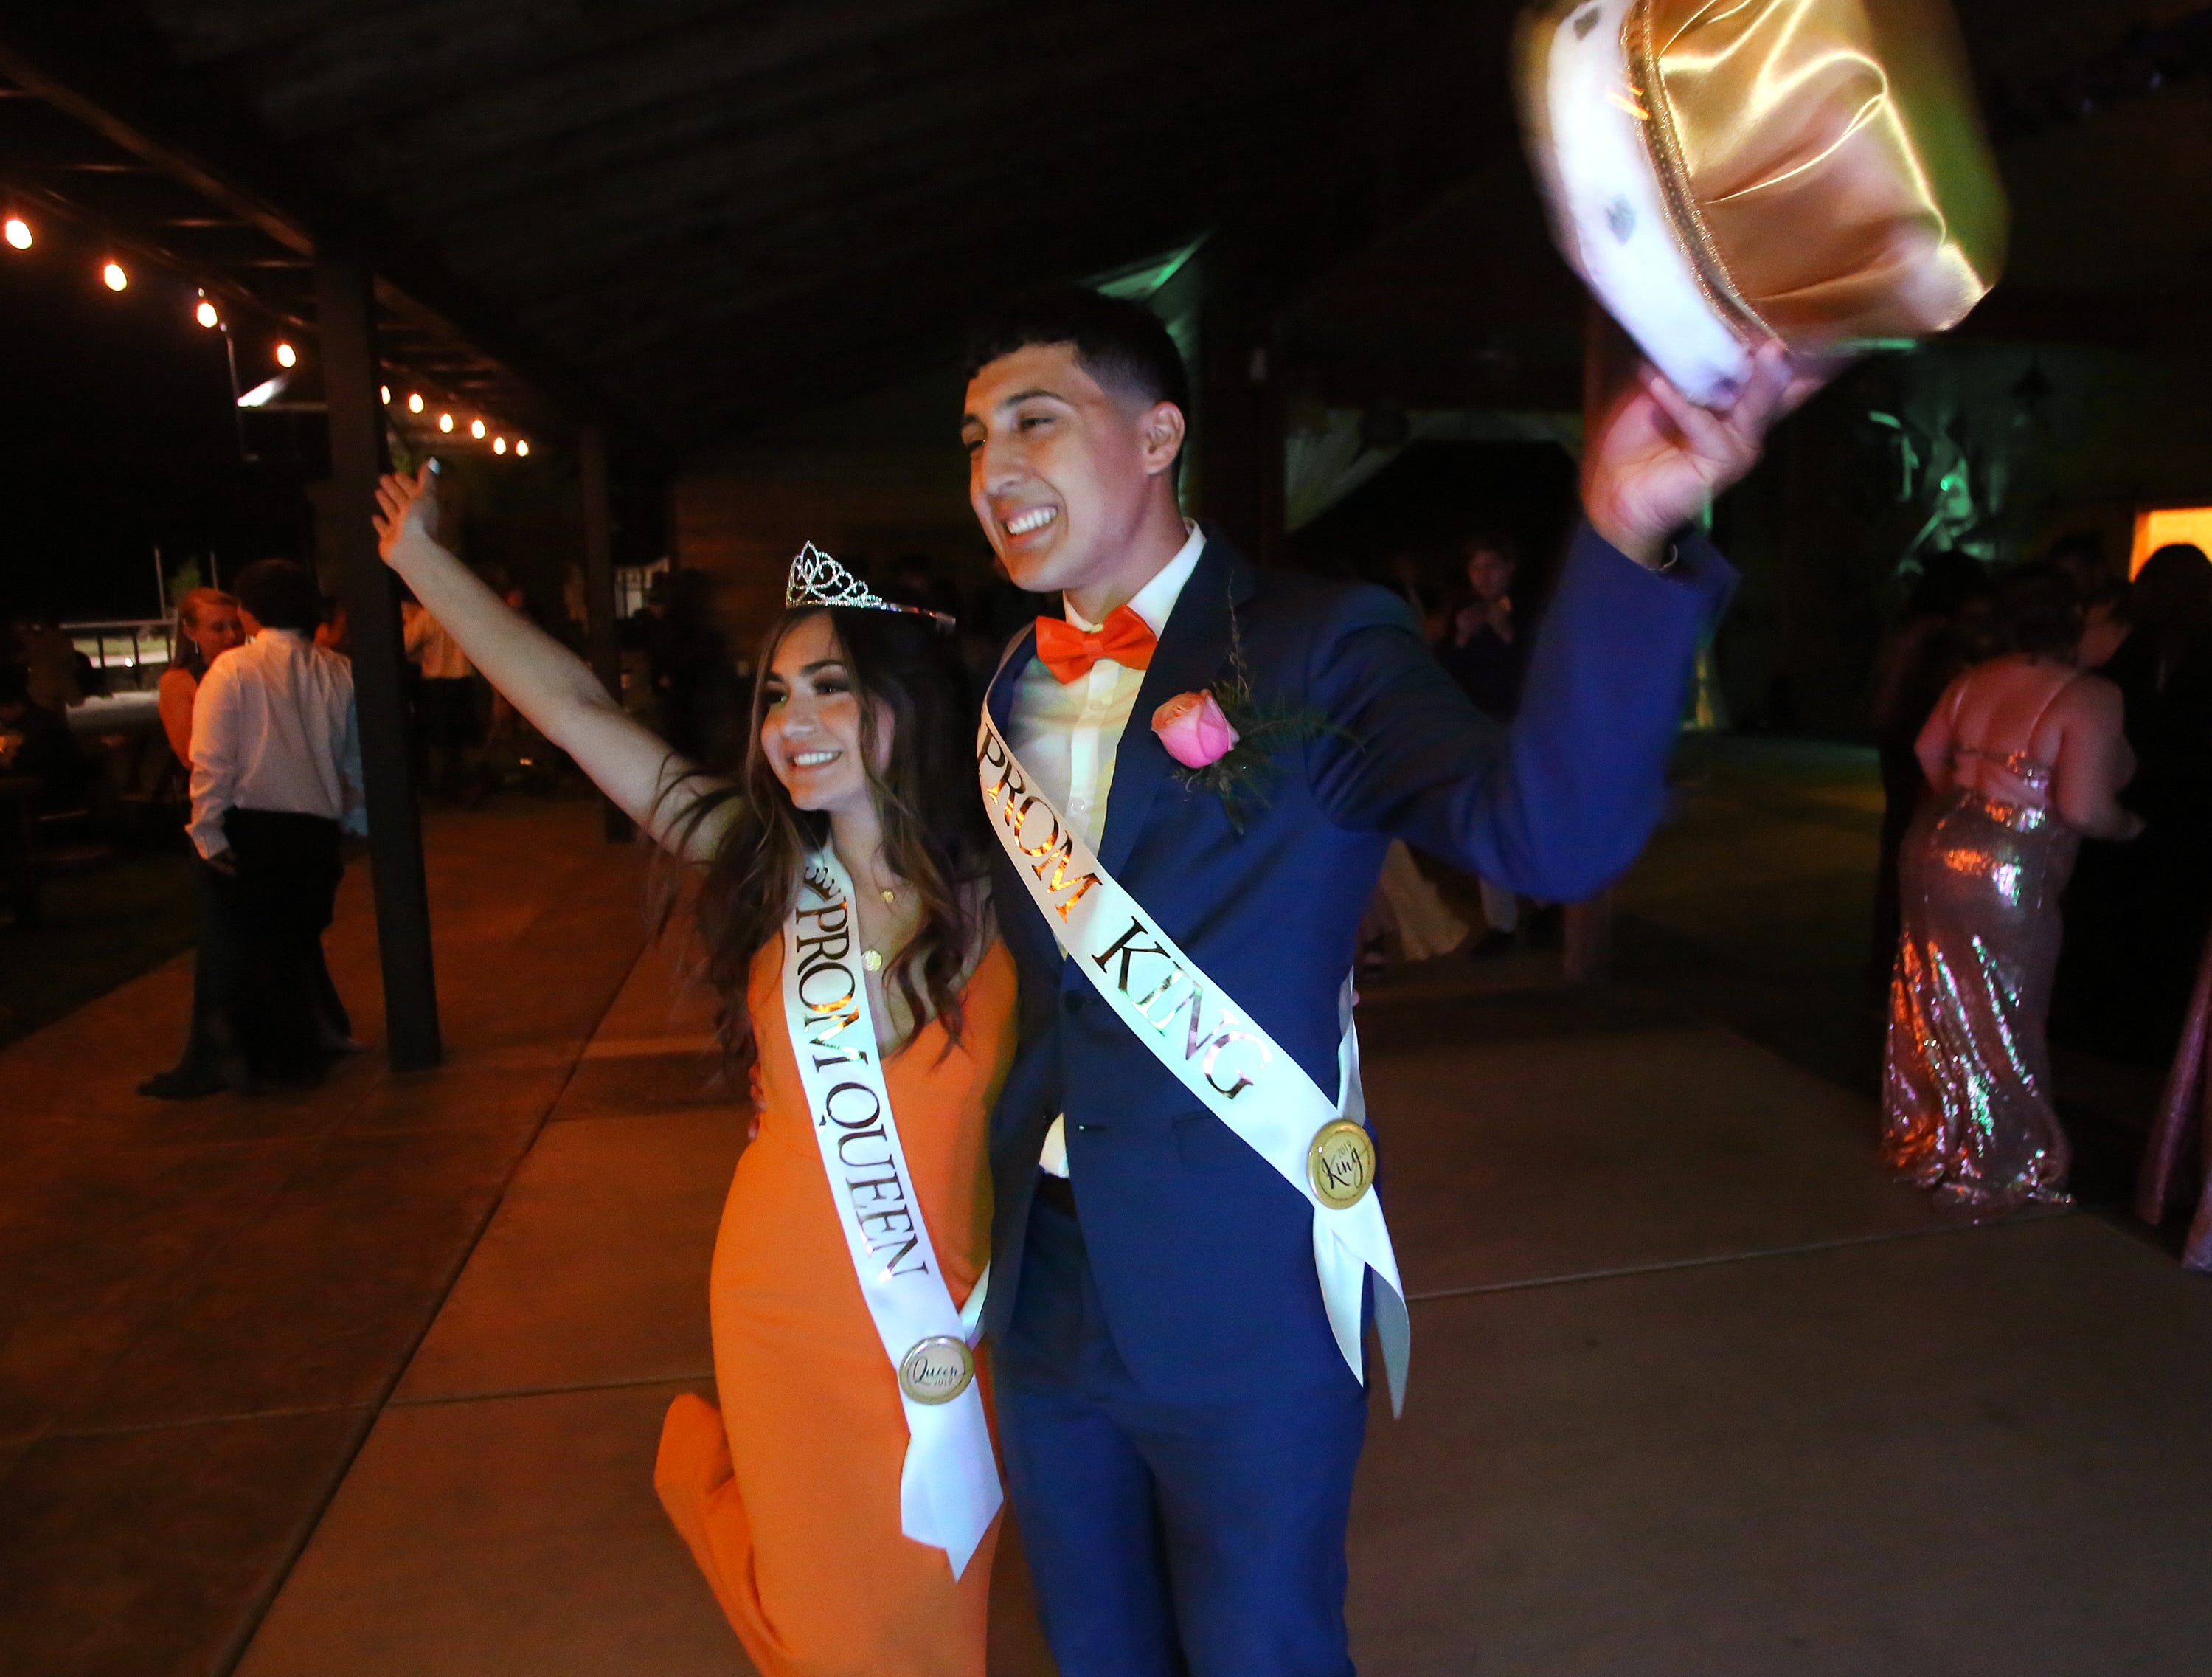 Jonathon Guerra and Aliyah Alvarez are named king and queen at this year's Exeter Union High School prom Saturday, May 4, 2019 in Woodlake, Calif.